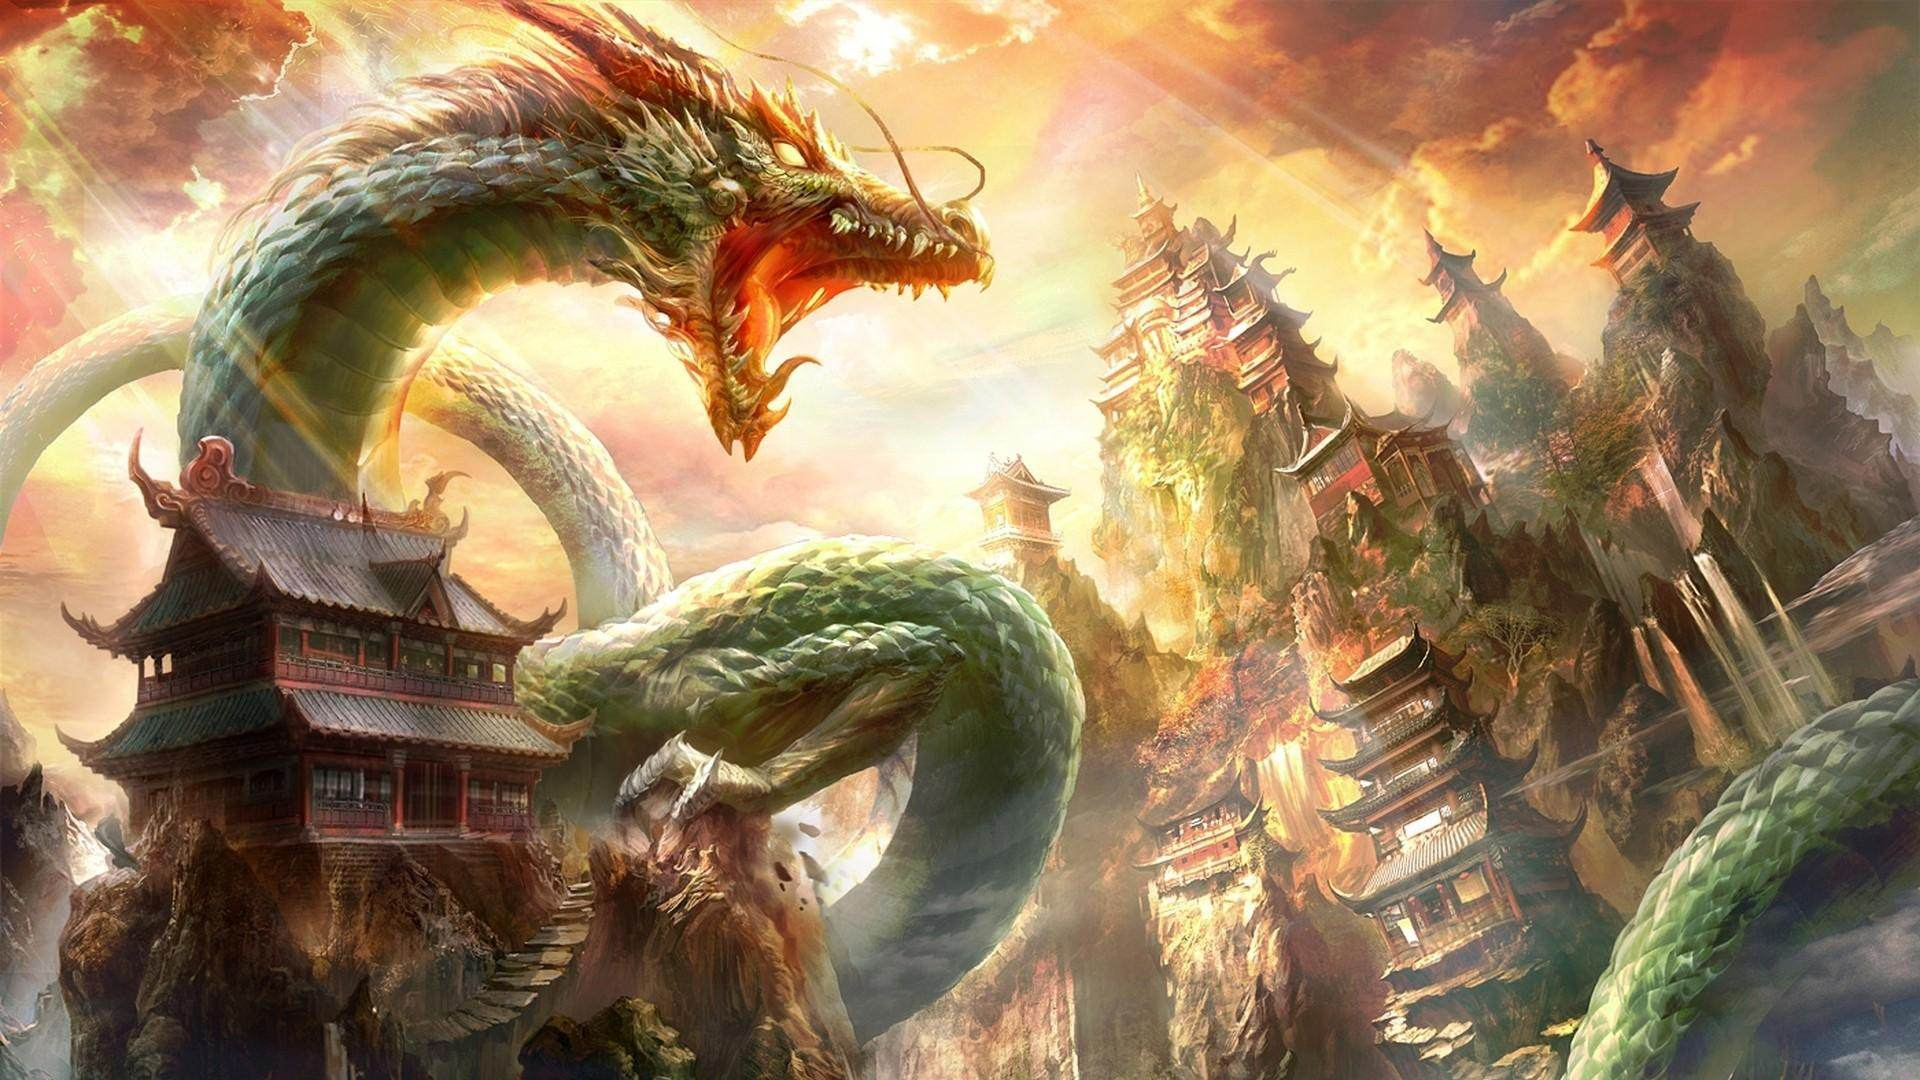 Amazing Creative Wallpaper of Dragon